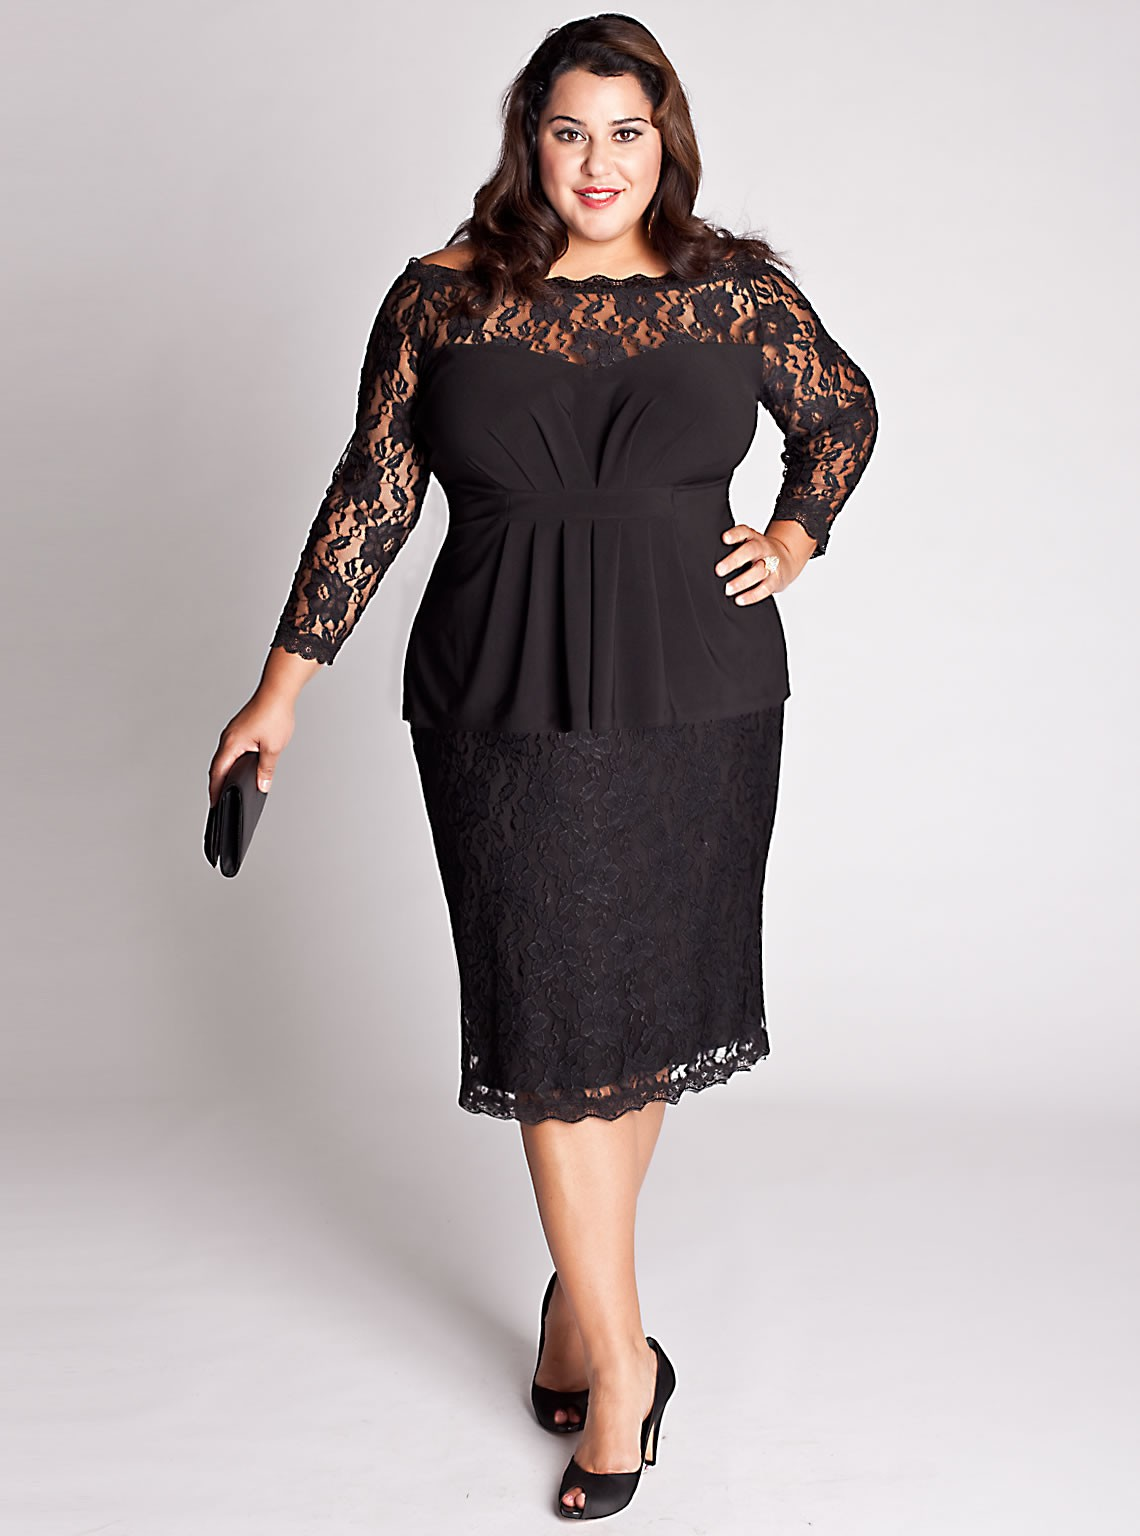 Dresses for plus size women emejing plus size clothing dresses ideas plus size clothing MSIKTZA